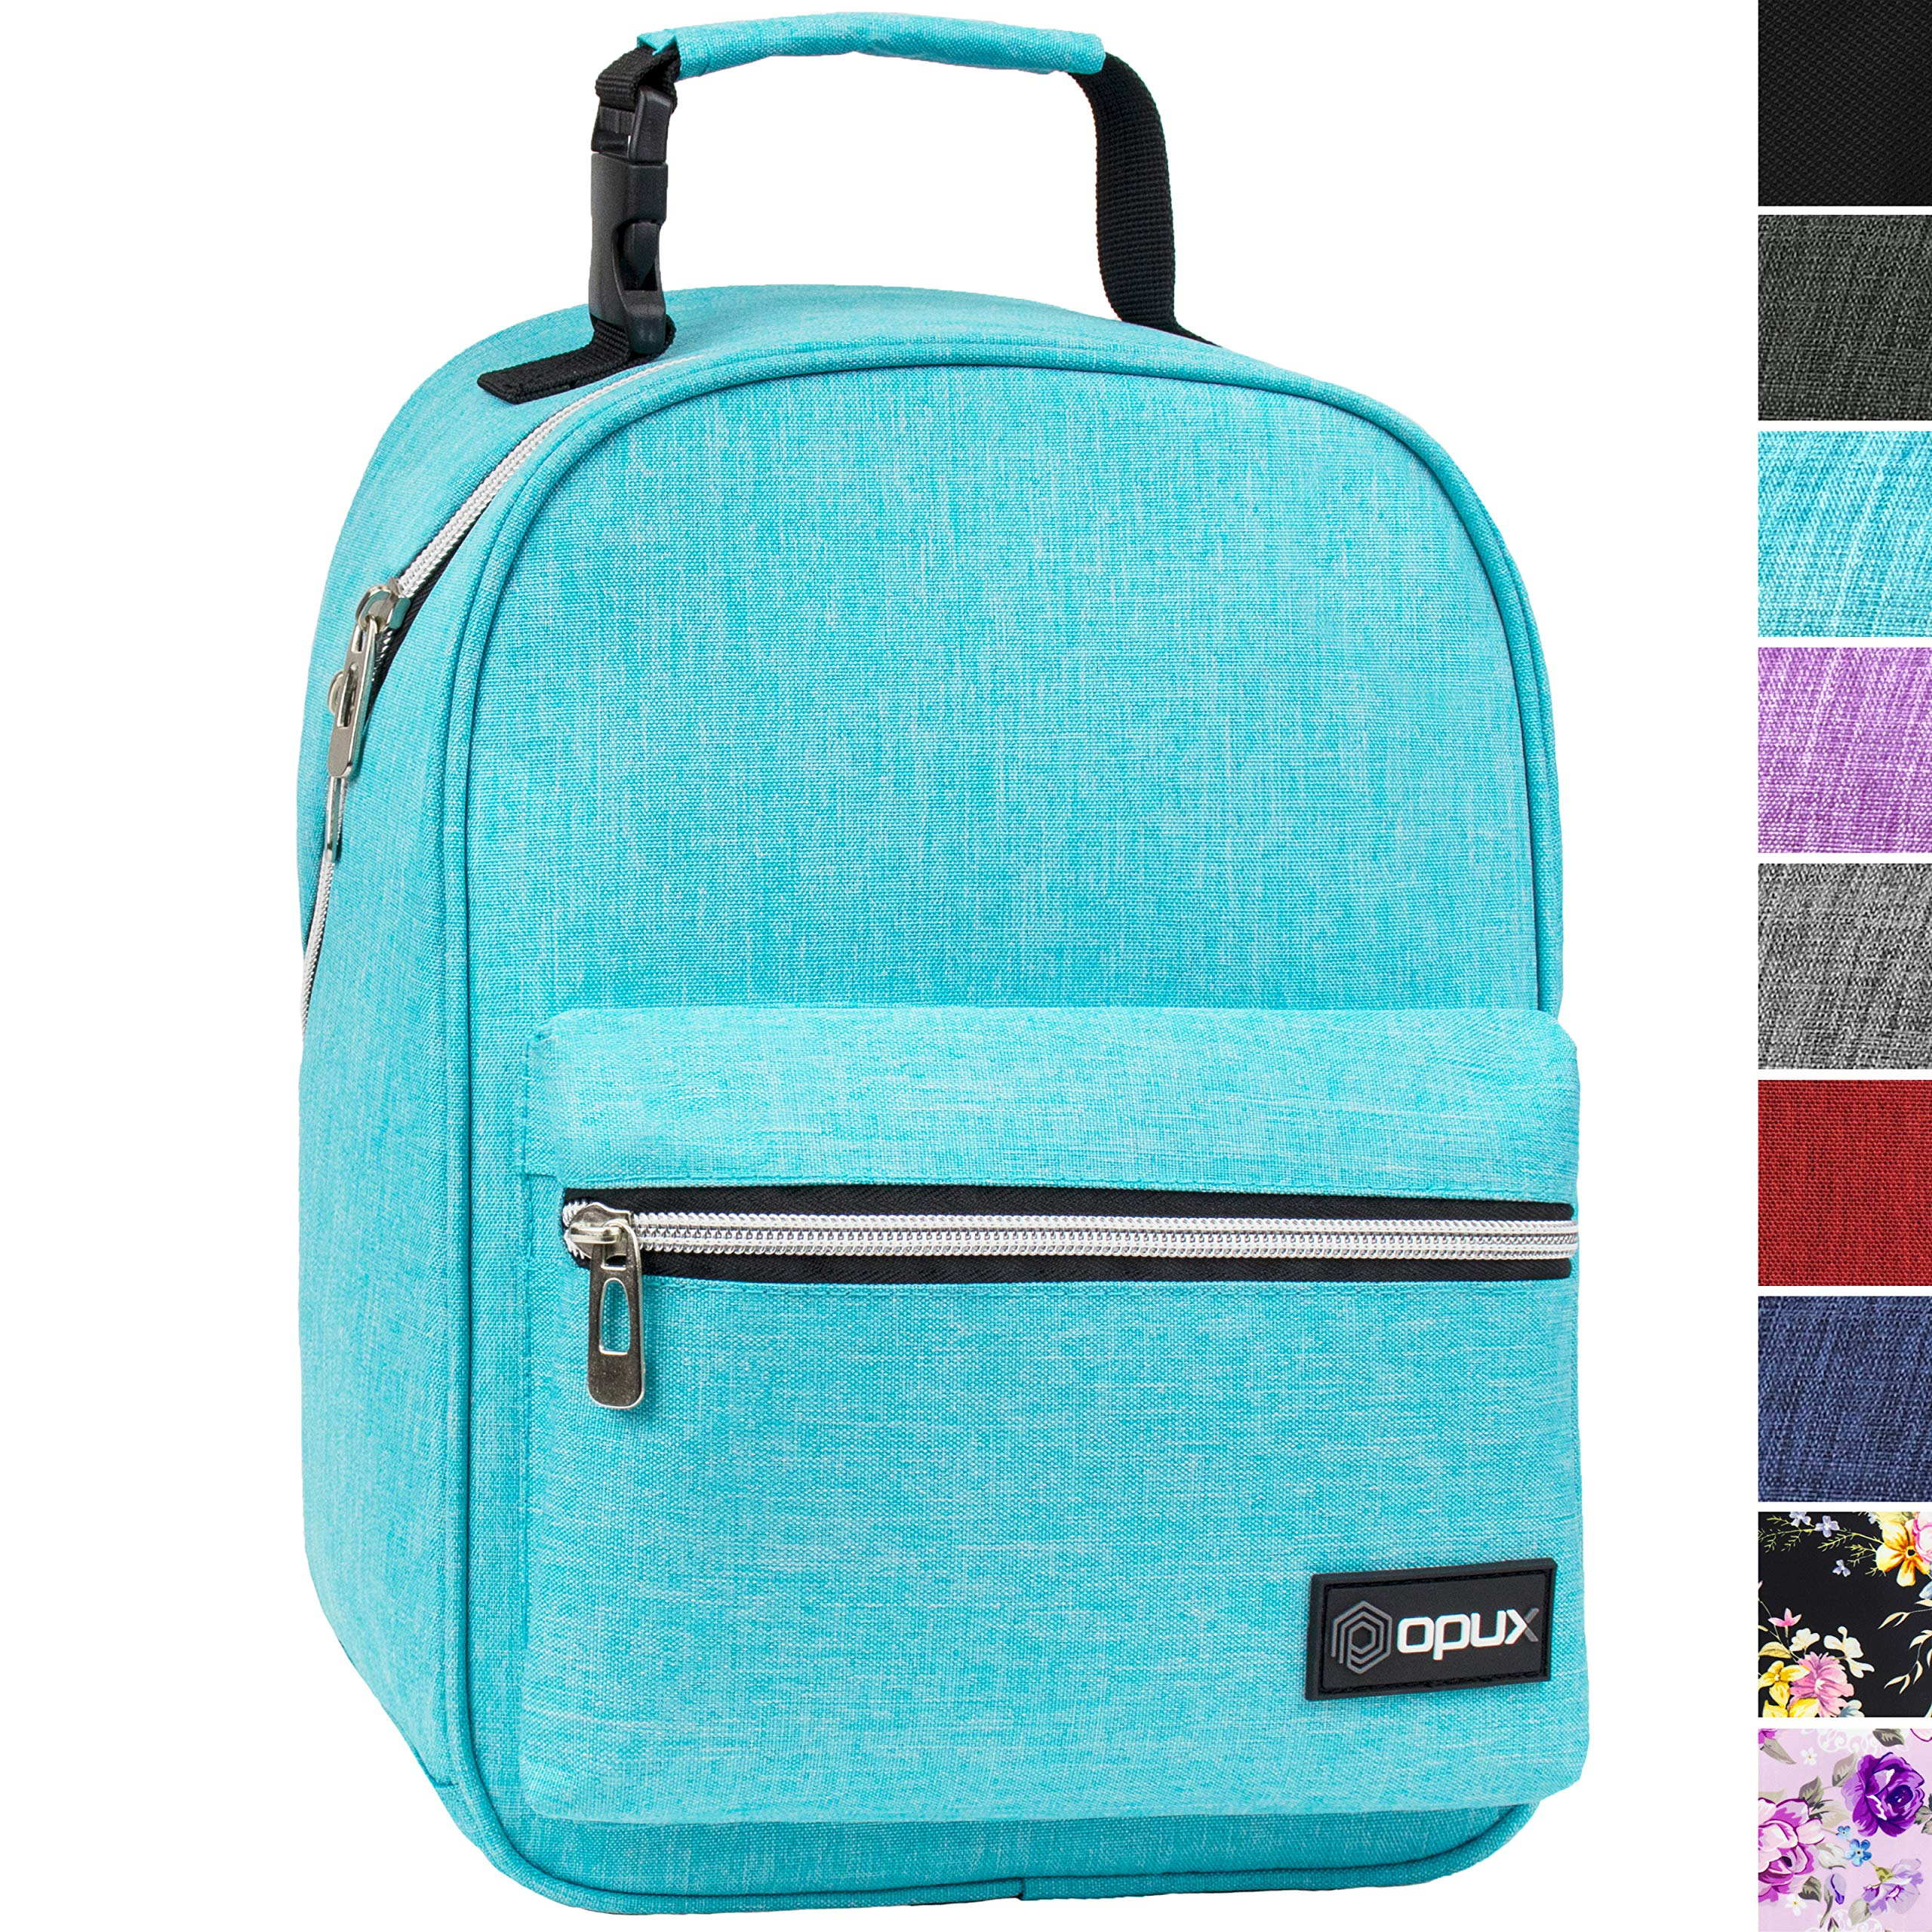 OPUX Premium Insulated Lunch Box for Boys, Girls | Durable Leakproof School Lunch Bag with Handle Clip, Mesh Pocket | Reusable Work Lunch Pail Cooler for Adult, Men, Women | Fits 14 Cans (Sea Blue)